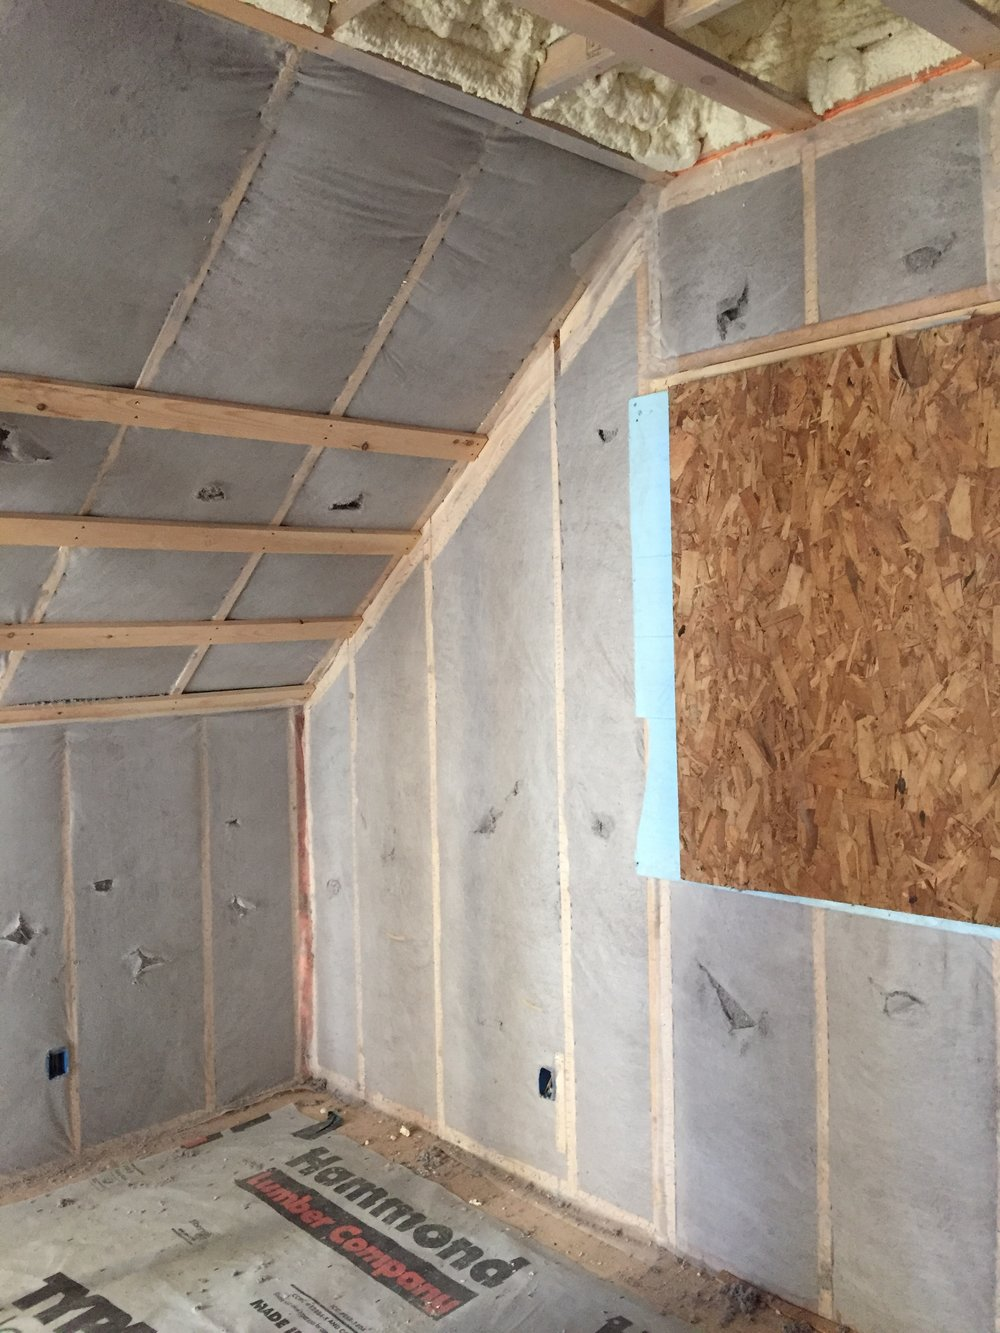 Wood fiber-based insulation, including dense-packed cellulose, is effective and has a low carbon footprint. Today's high-quality cellulose does not settle if installed properly and is pest-resistant, thanks to its mineral borate additive. Photo courtesy of Rook Energy Solutions.